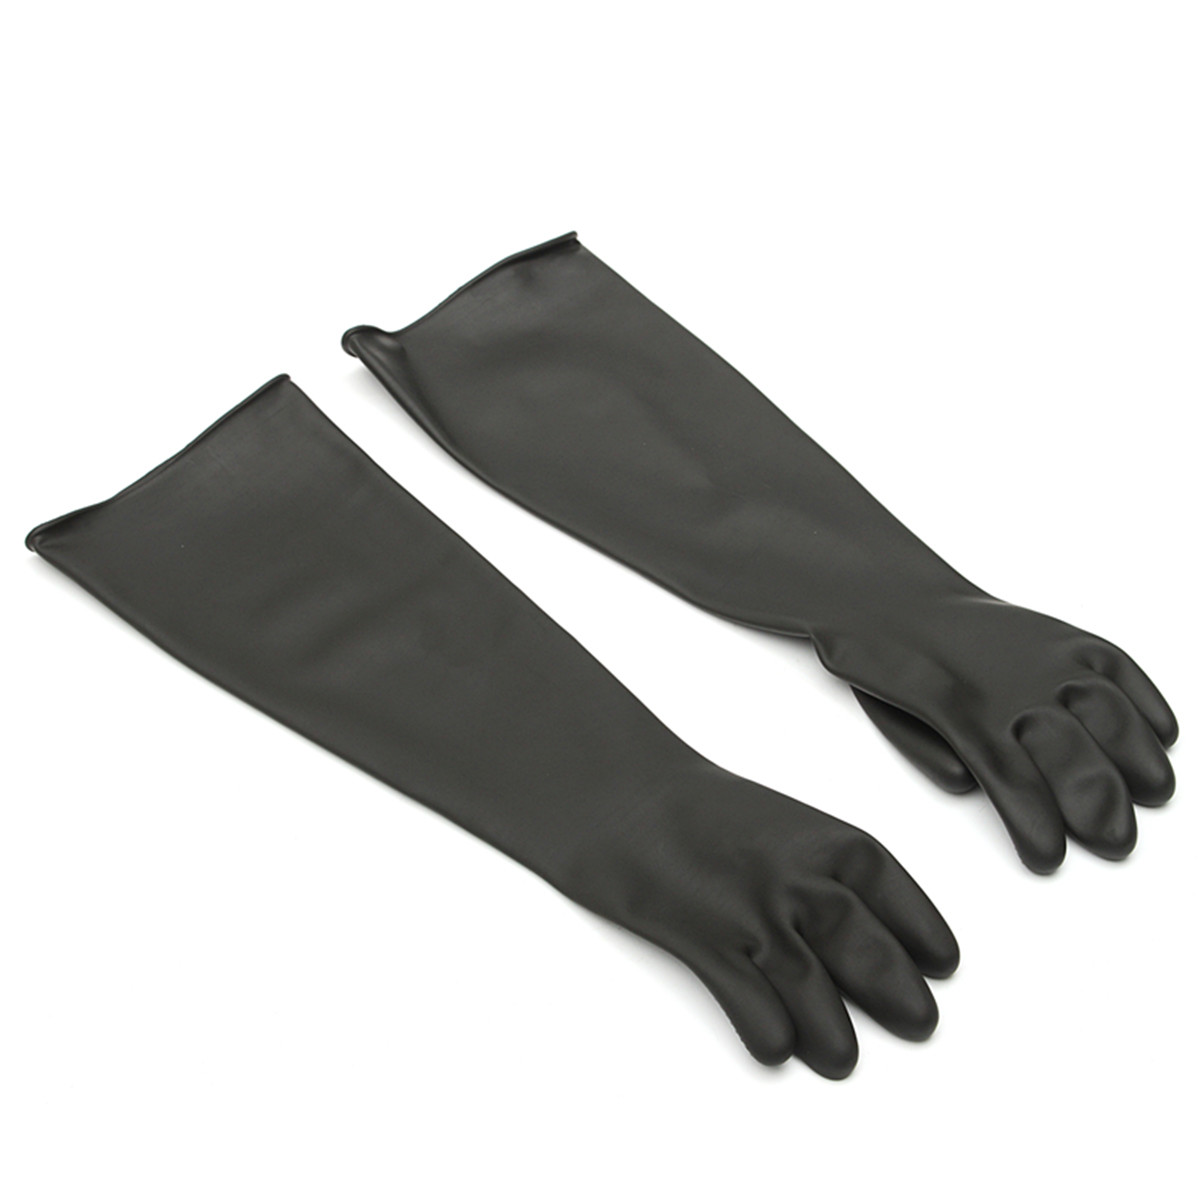 NEW 1 Pair Emulsion Chemical Resistance Industry Elbow Long Rubber Gloves Acid Chemical Midoni Security Safely Black anti acid and alkali chemical corrosion fisheries agriculture latex rubber gloves labor supplies black